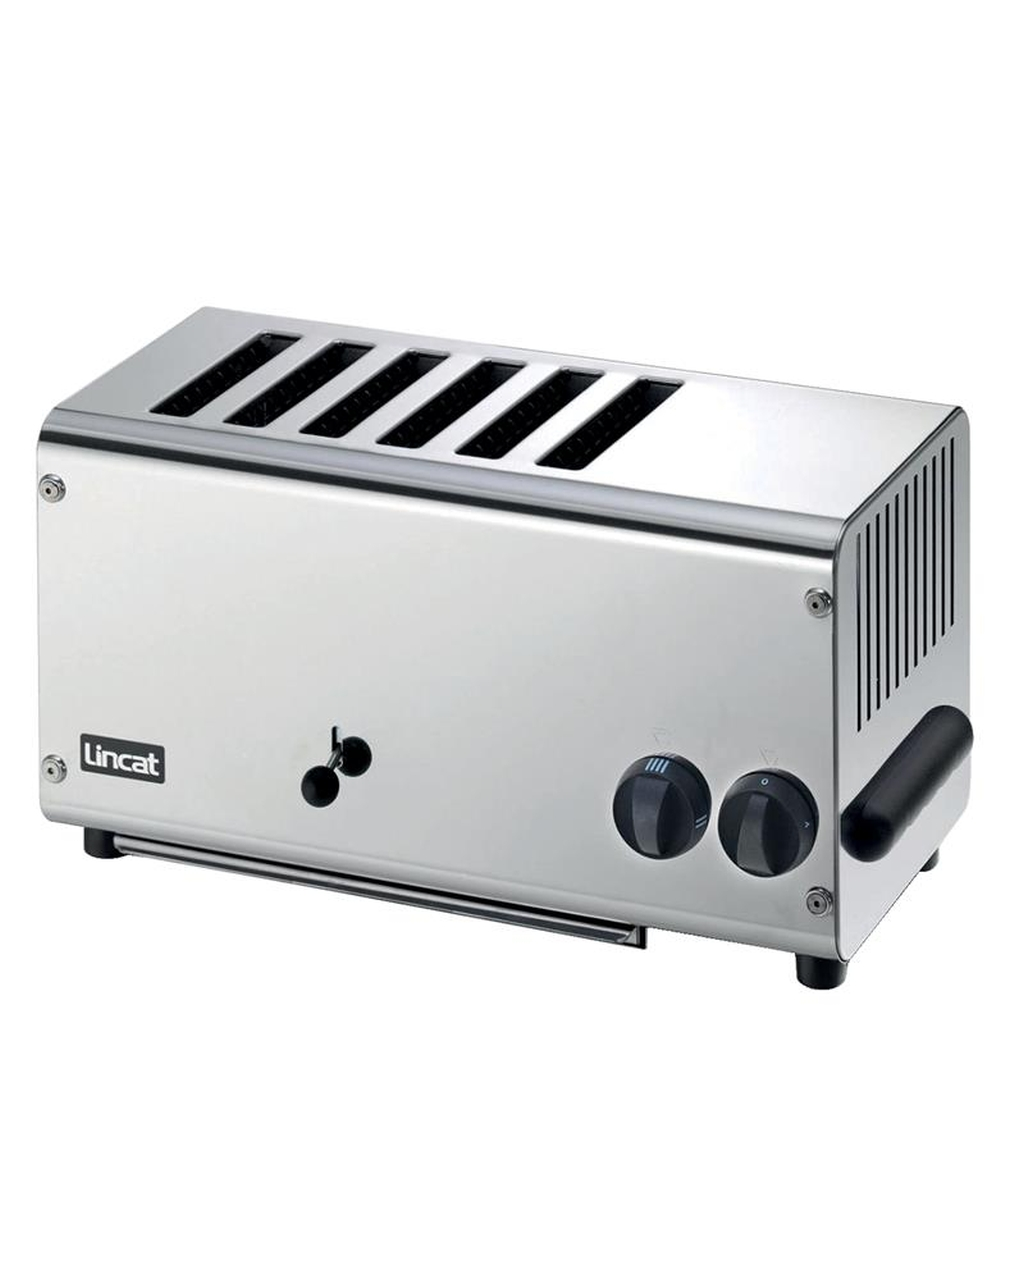 6 Slot Commercial Toaster